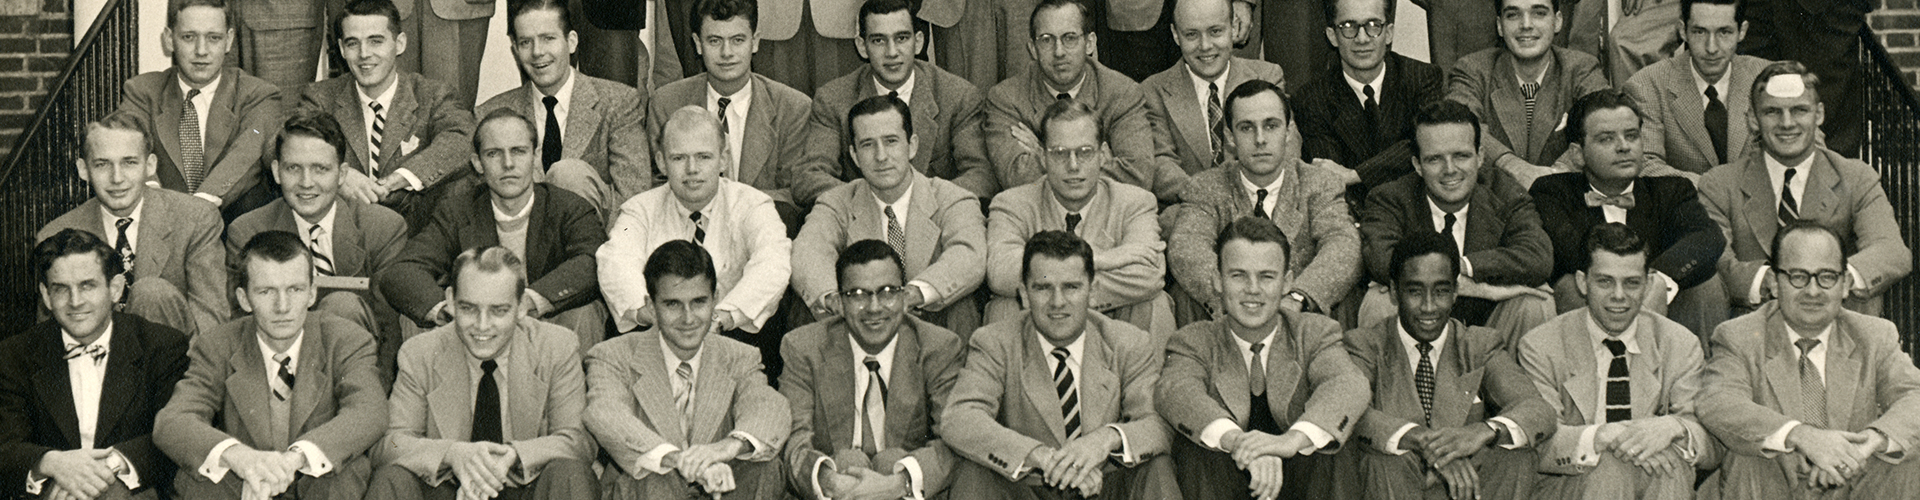 photo of group of men seated in rows from the archives